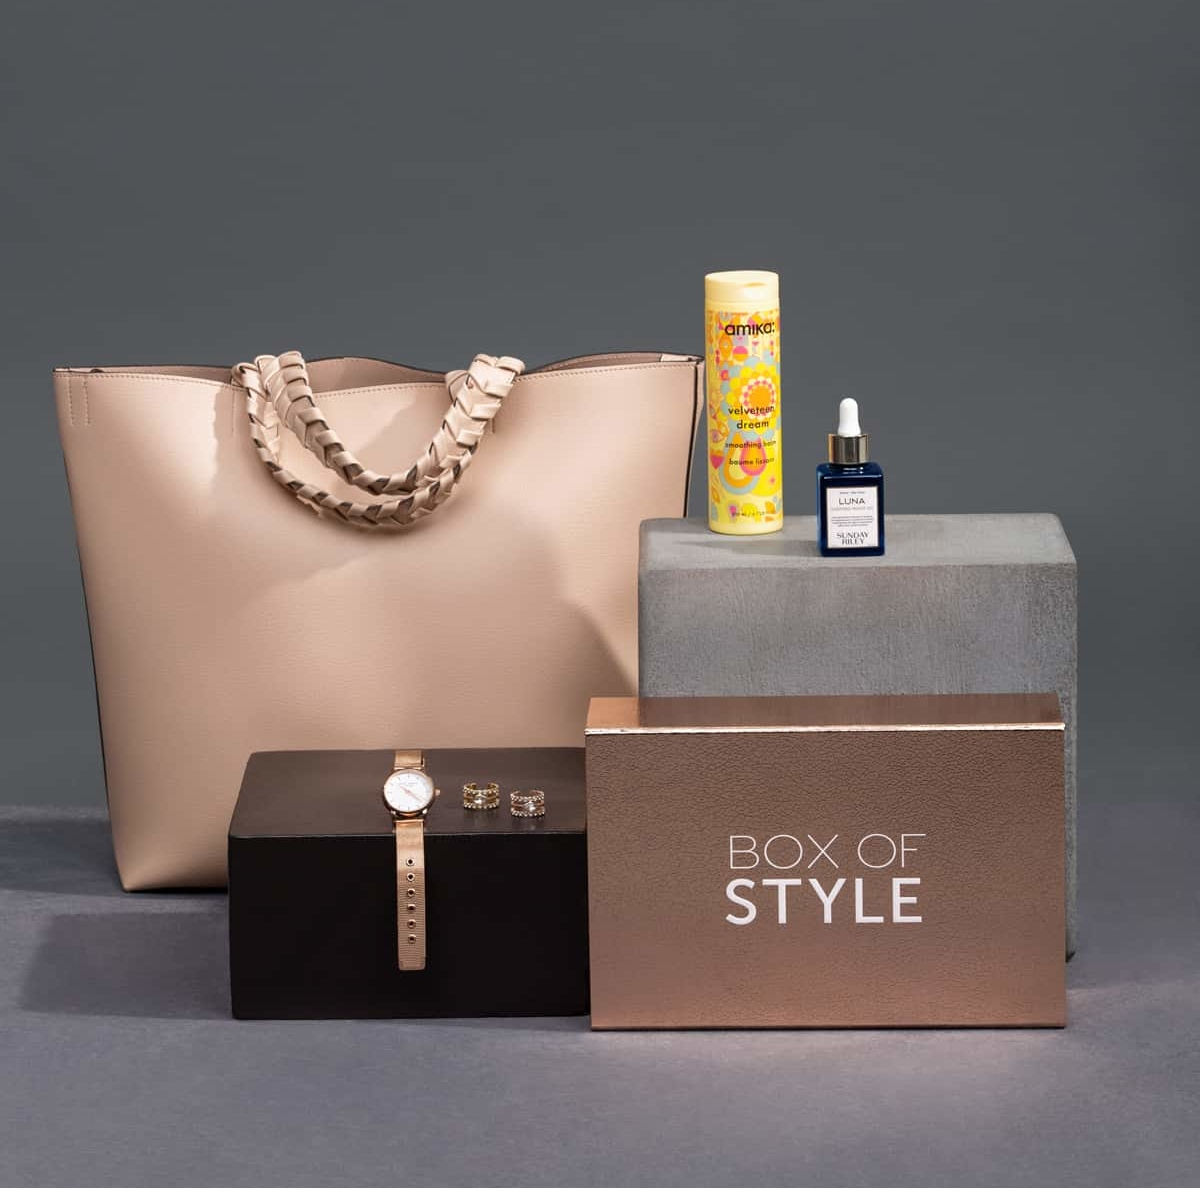 Rachel Zoe Box of Style Cyber Monday Deal: $40 Off Any Subscription!